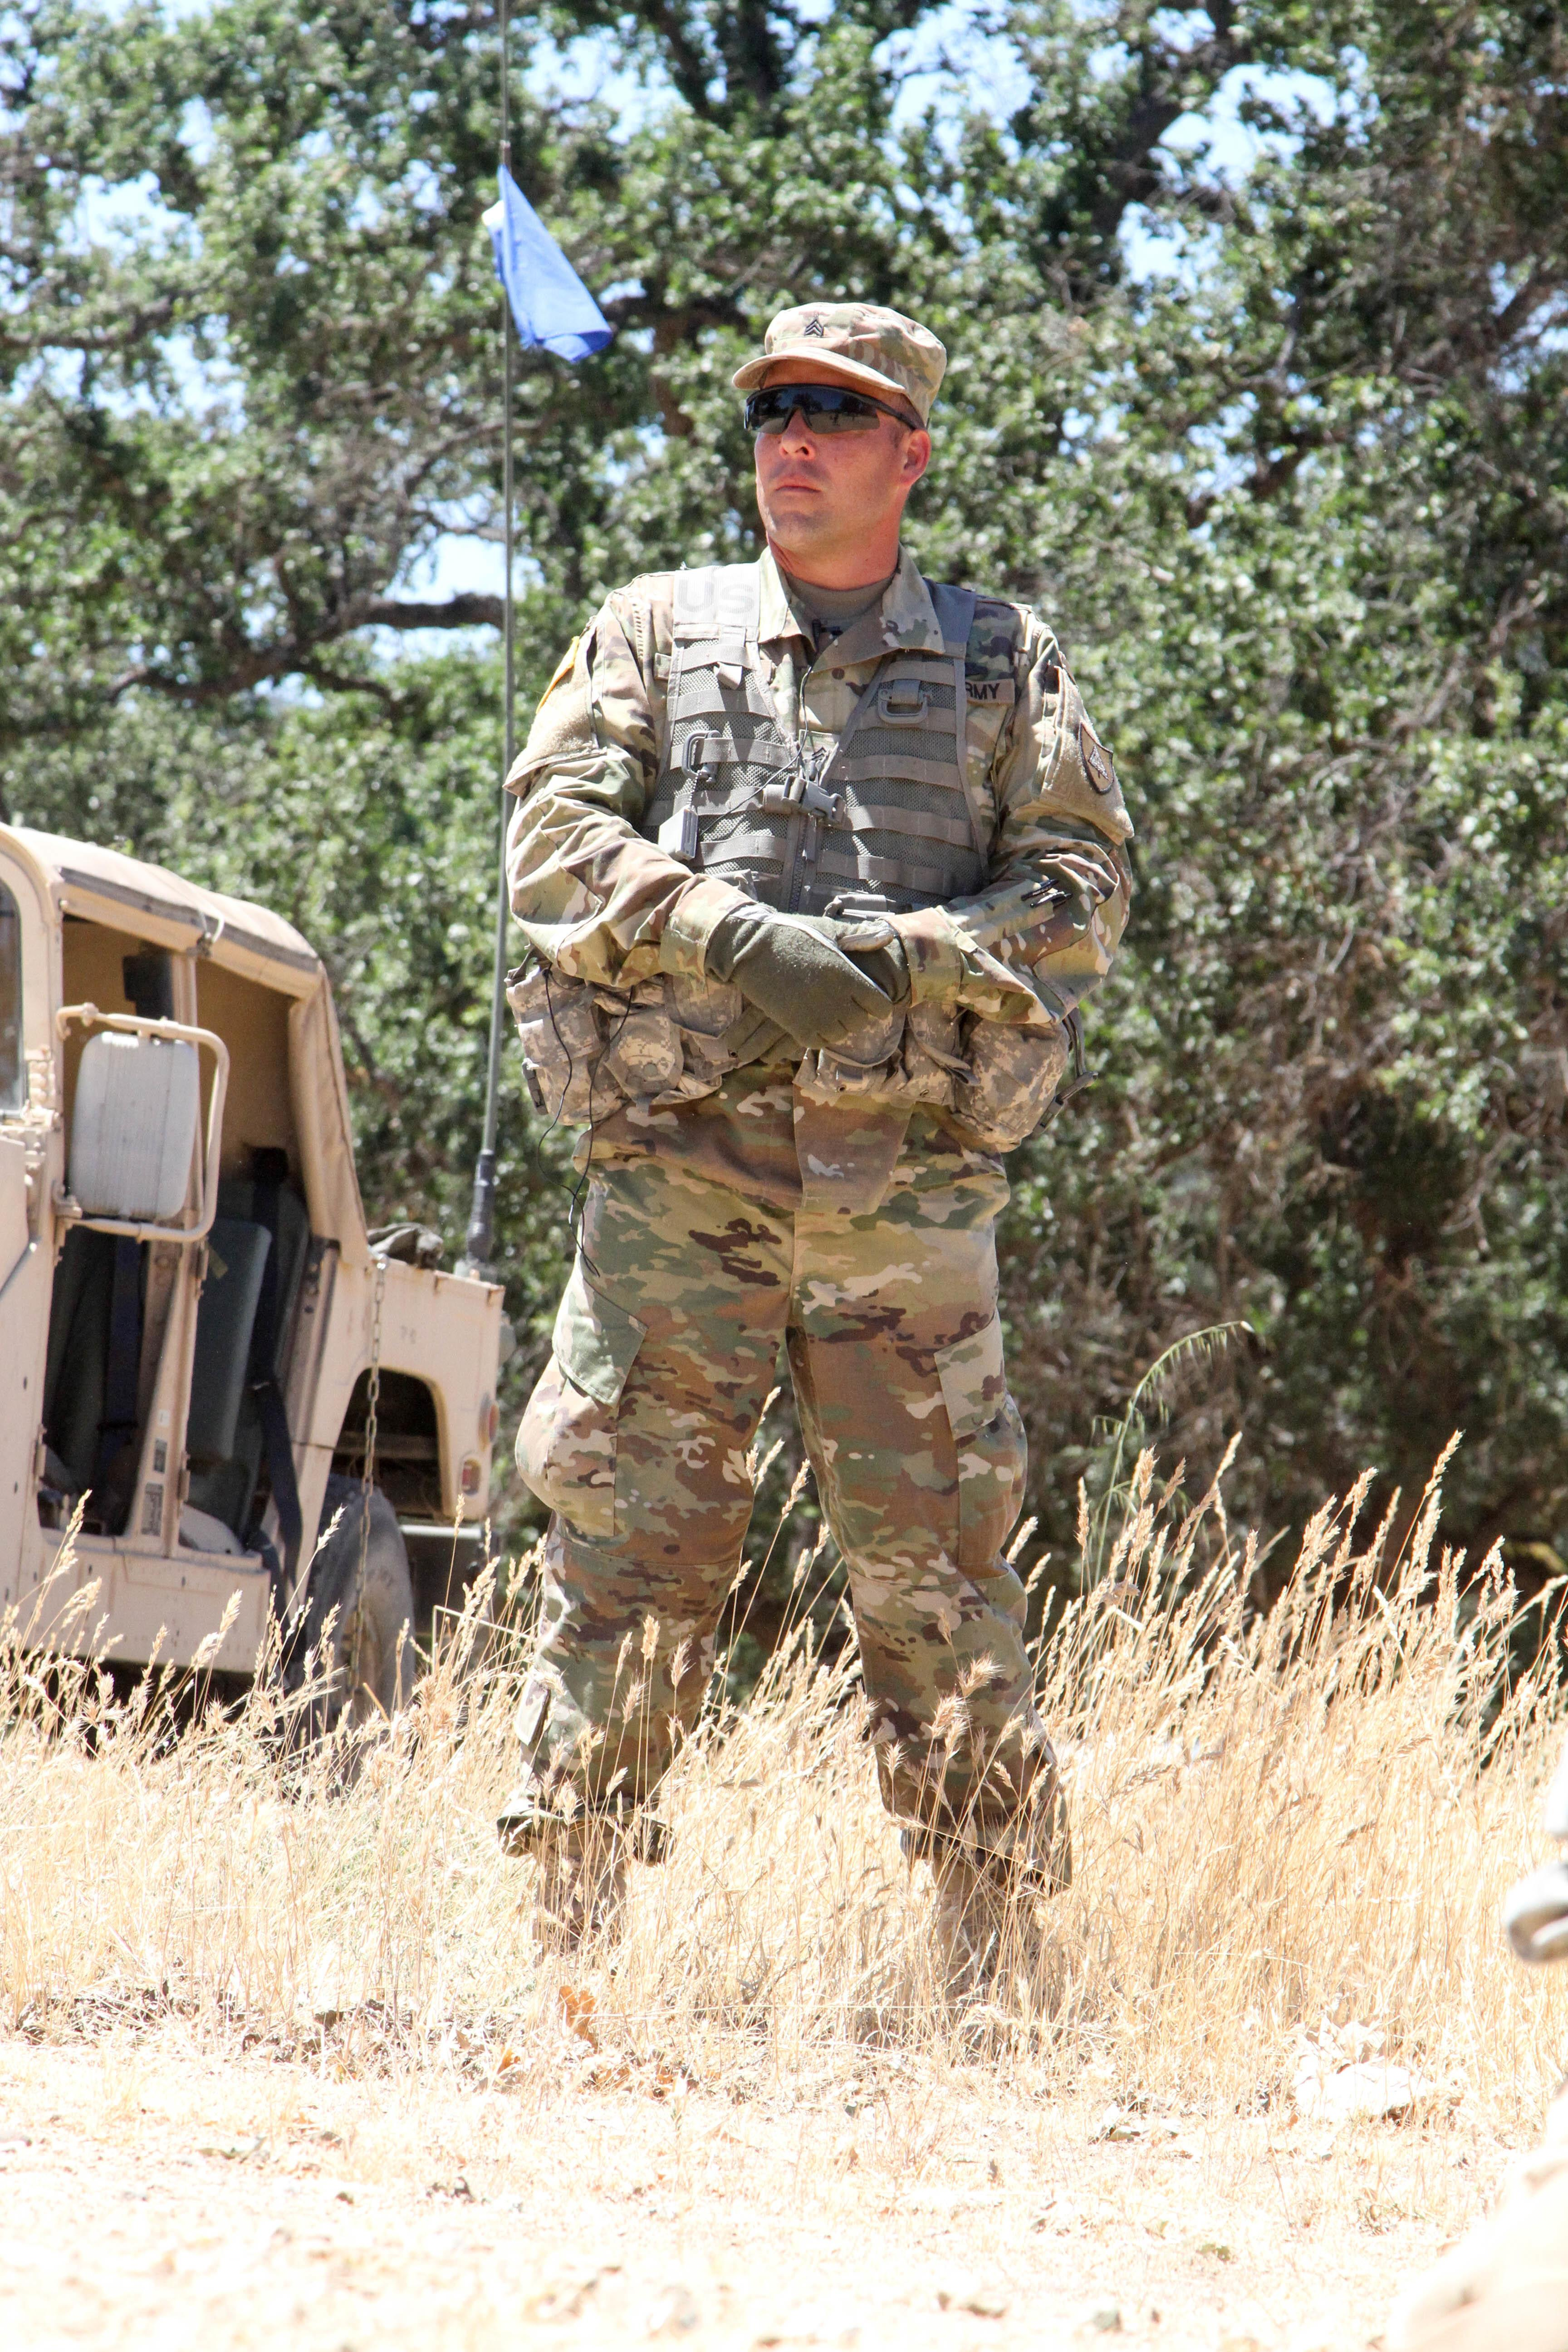 US Army Reserve Sgt David Terow An Observer Coach Trainer With The